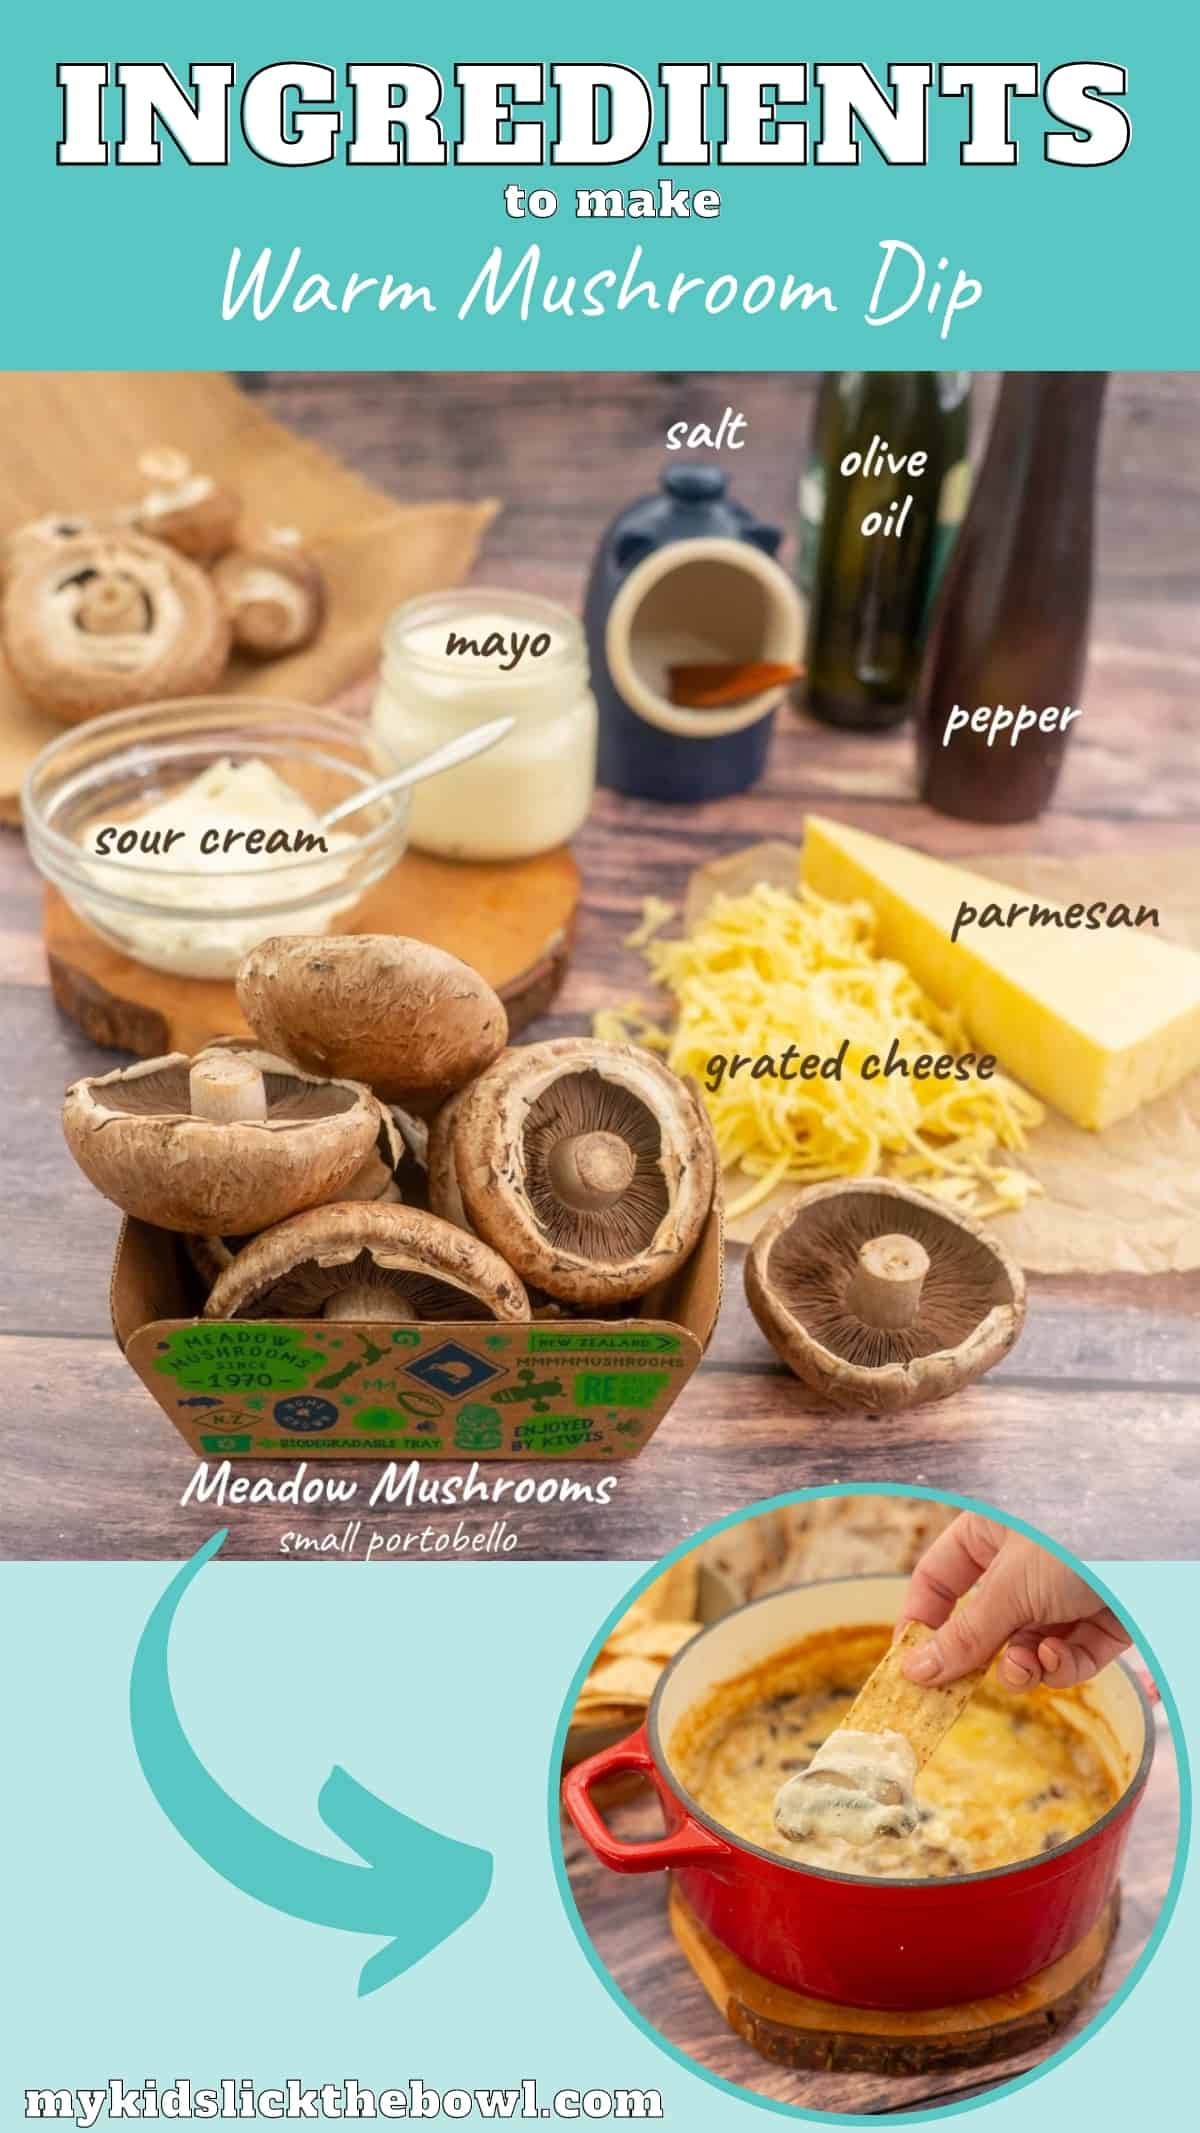 The ingredients to make cheesy mushroom dip on a wooden table with text overlay.